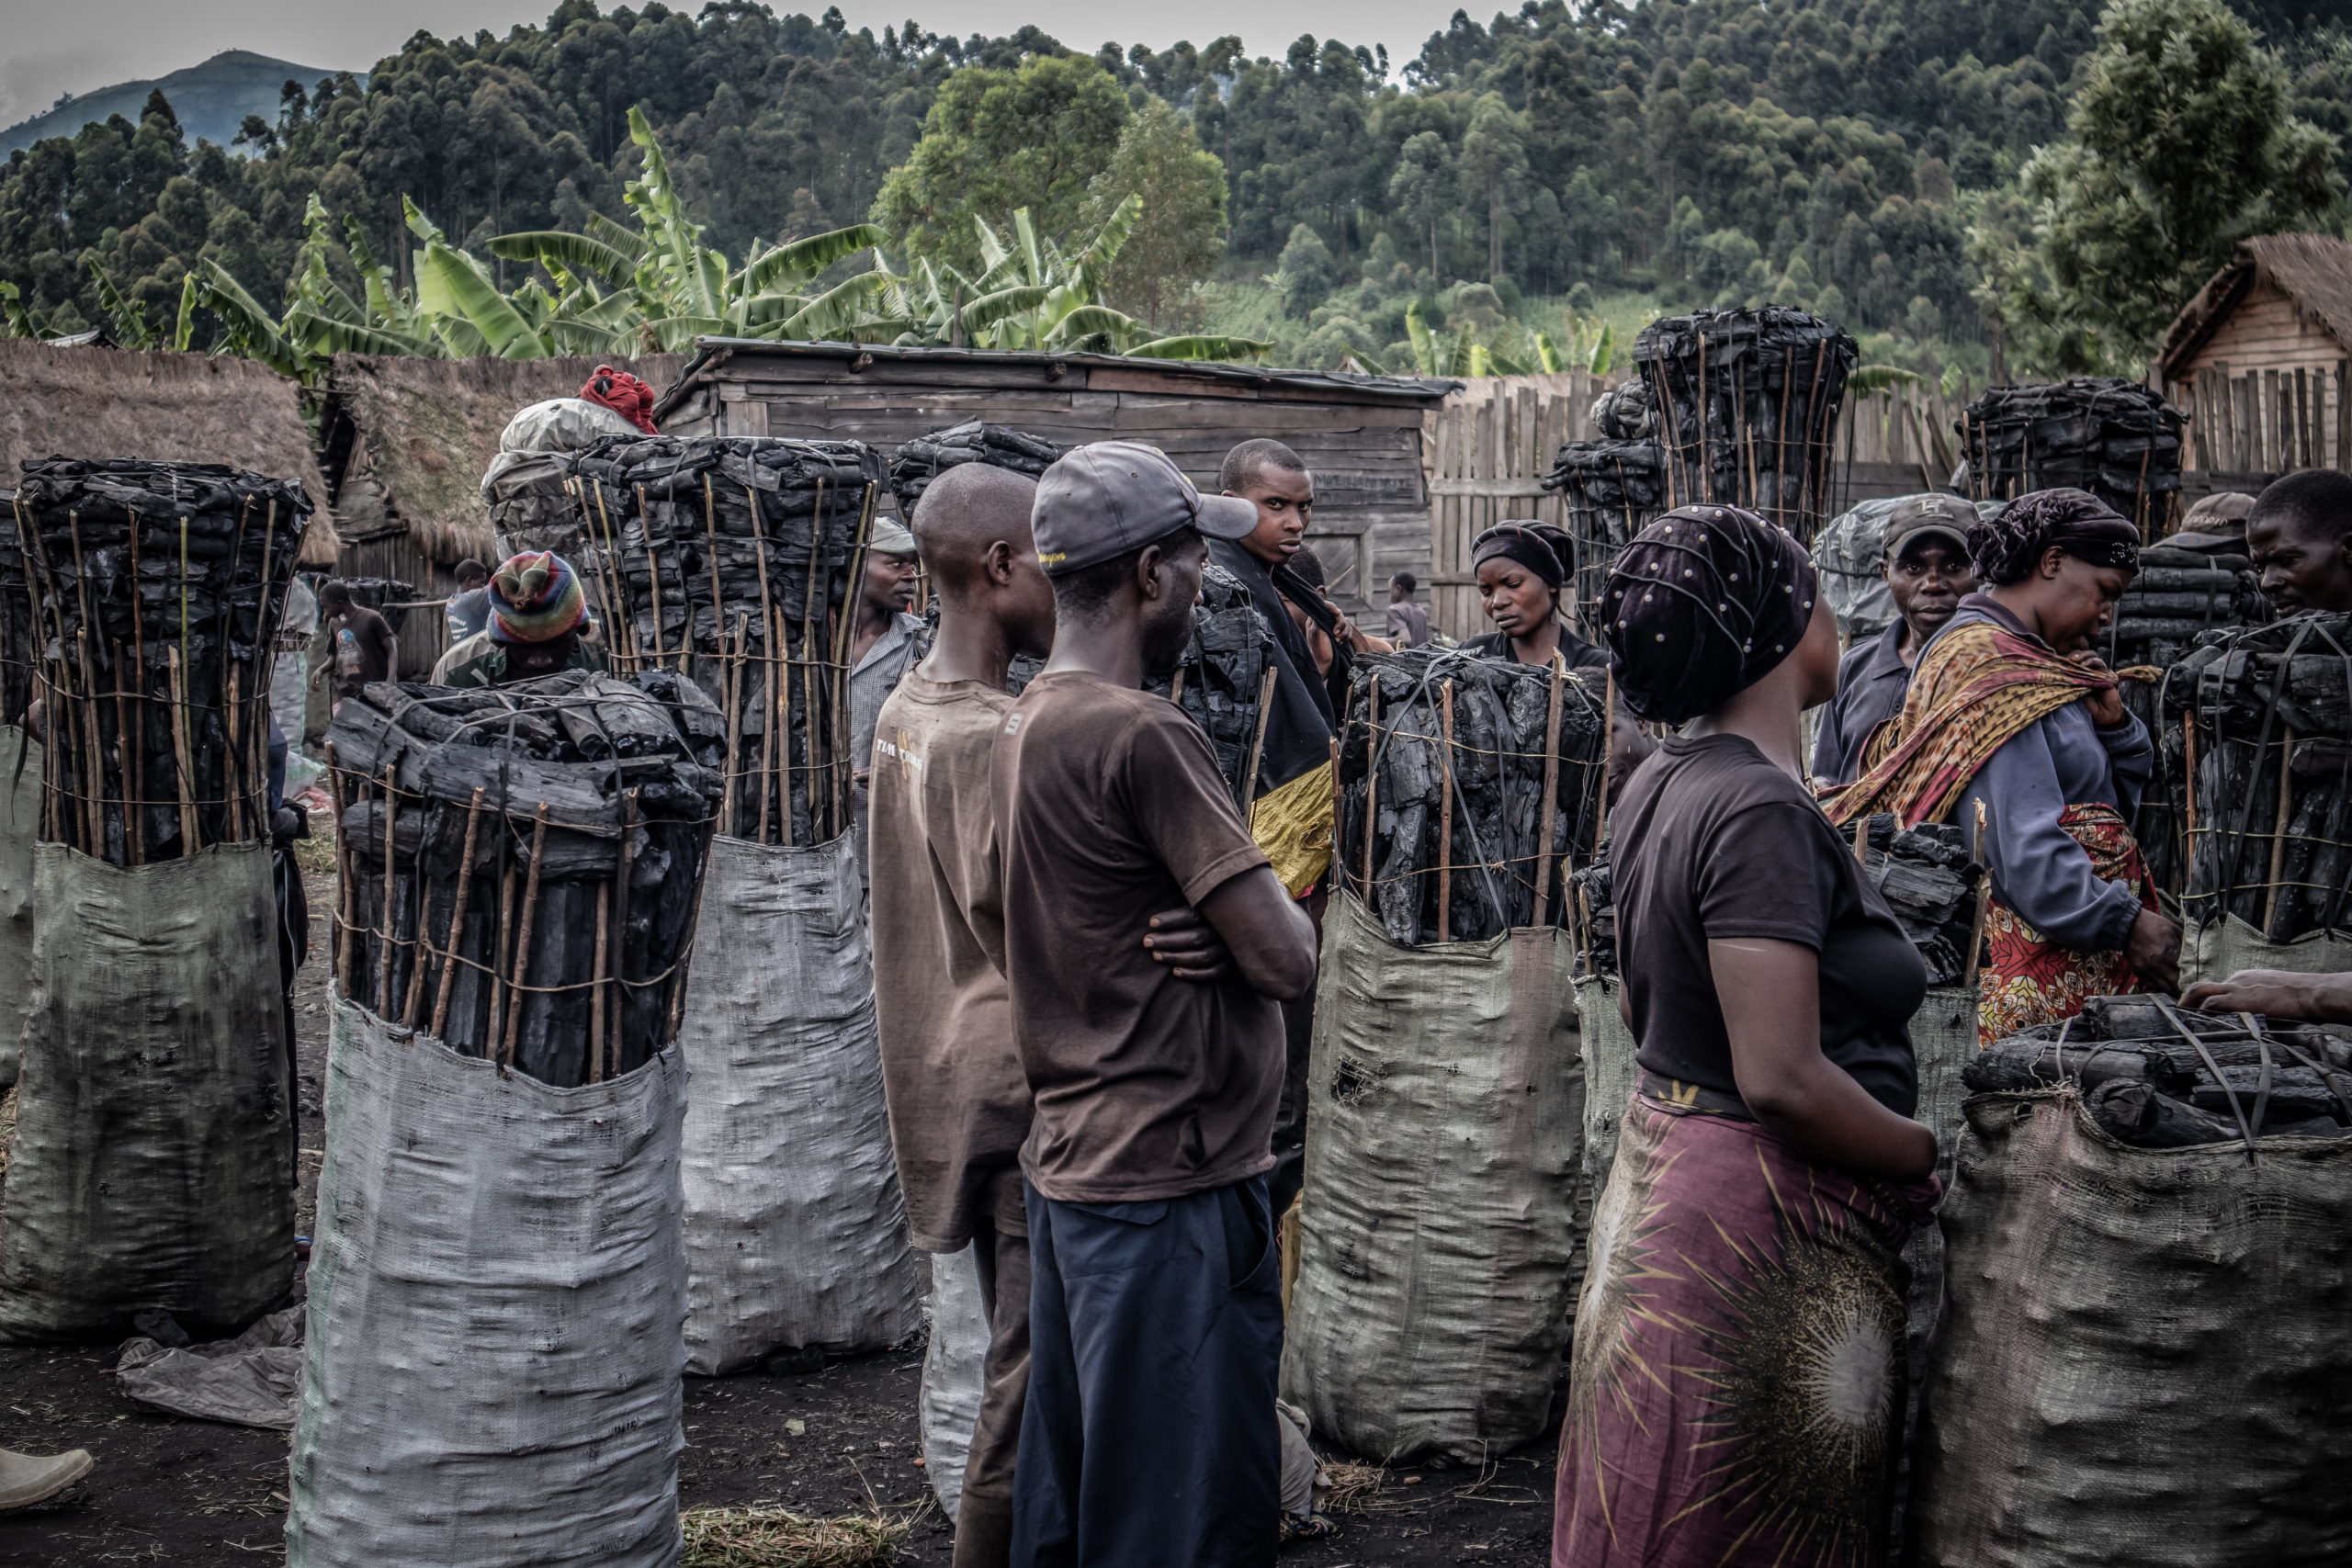 Virunga National Park, DRC, December 2020. Charcoal traders at Kulupango market on the edge of Virunga National Park just north of the eastern Congolese city of Goma. Most of the charcoal bound for Goma passes through Kulupango market. © Guerchom Ndebo for Fondation Carmignac